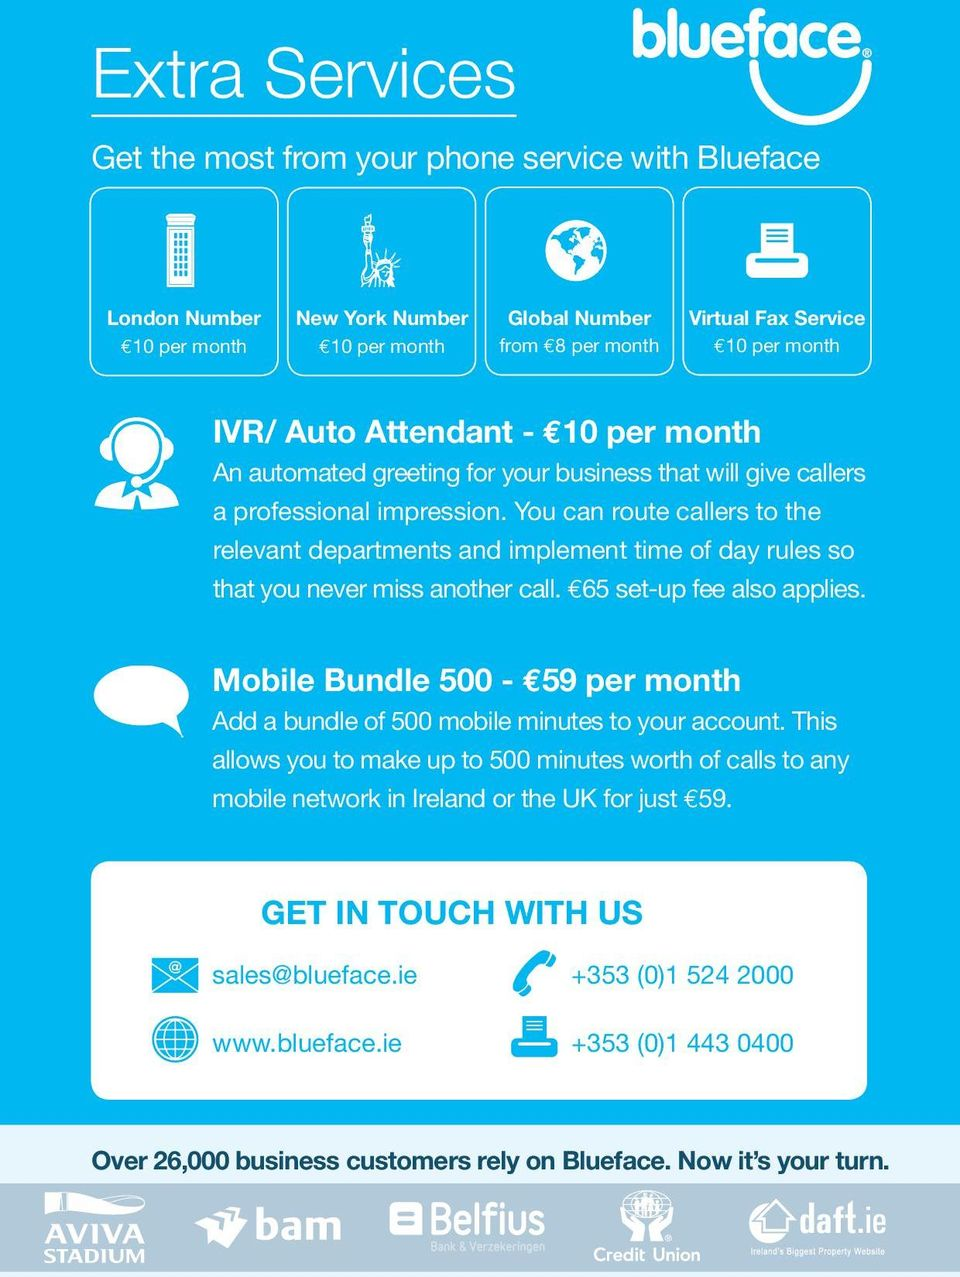 65 set-up fee also applies. Mobile Bundle 500-59 per month Add a bundle of 500 mobile minutes to your account.